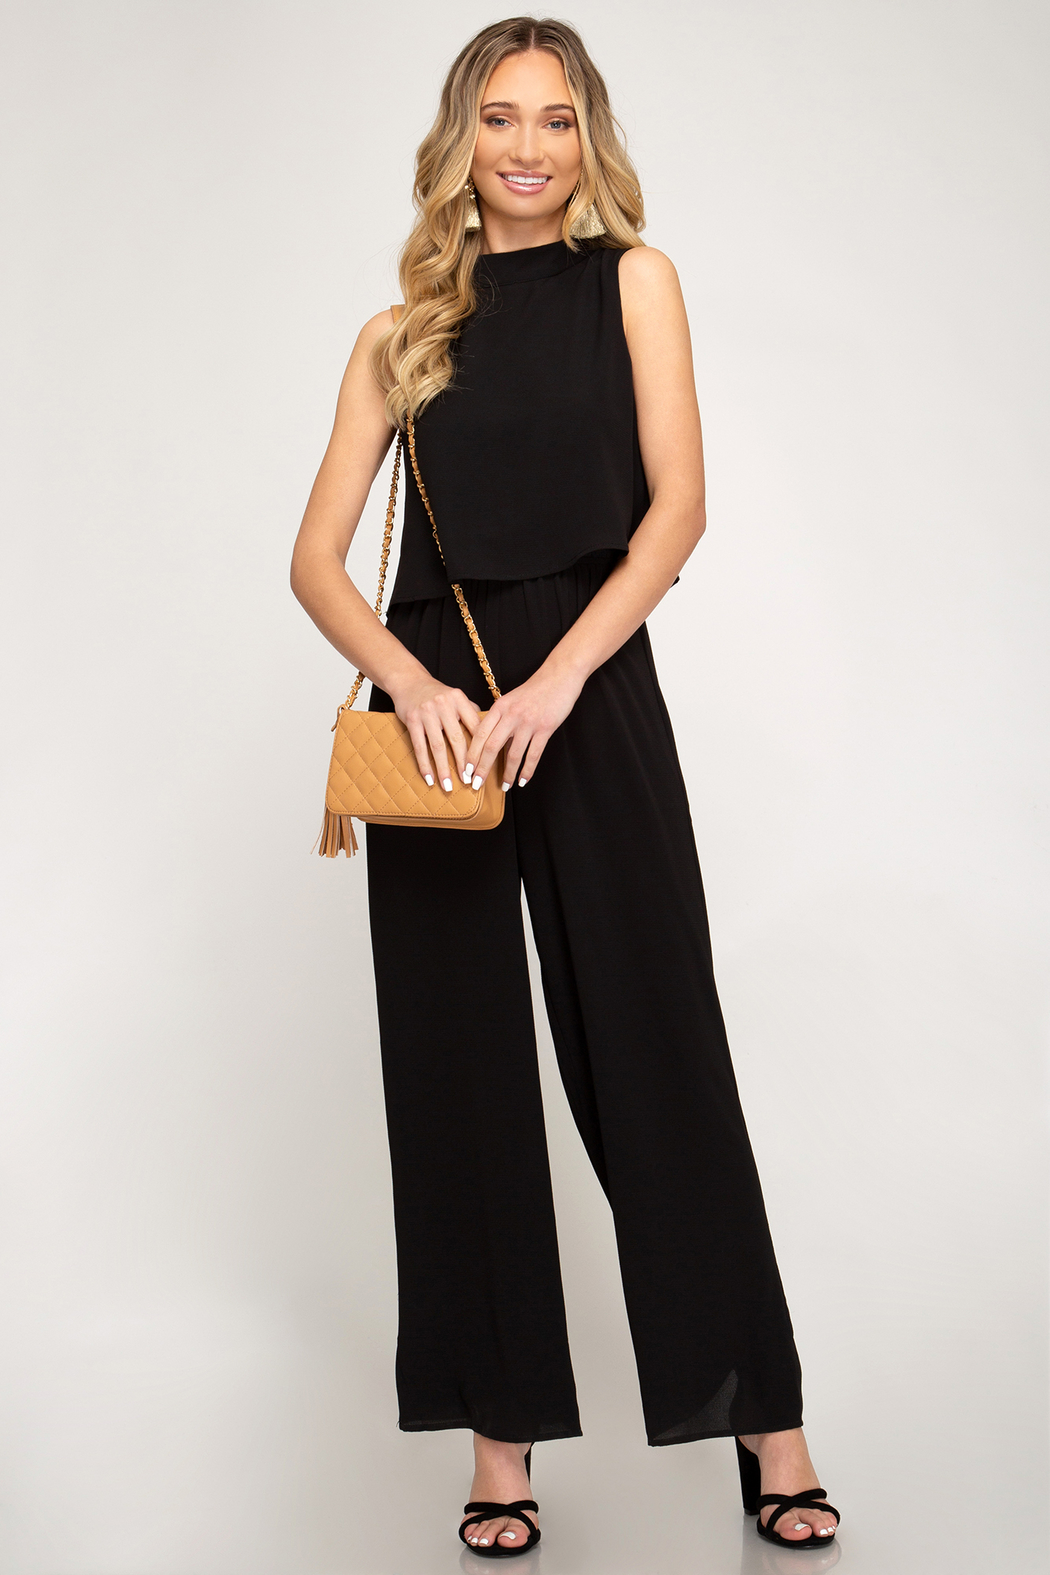 She + Sky Layered Top Jumpsuit - Main Image